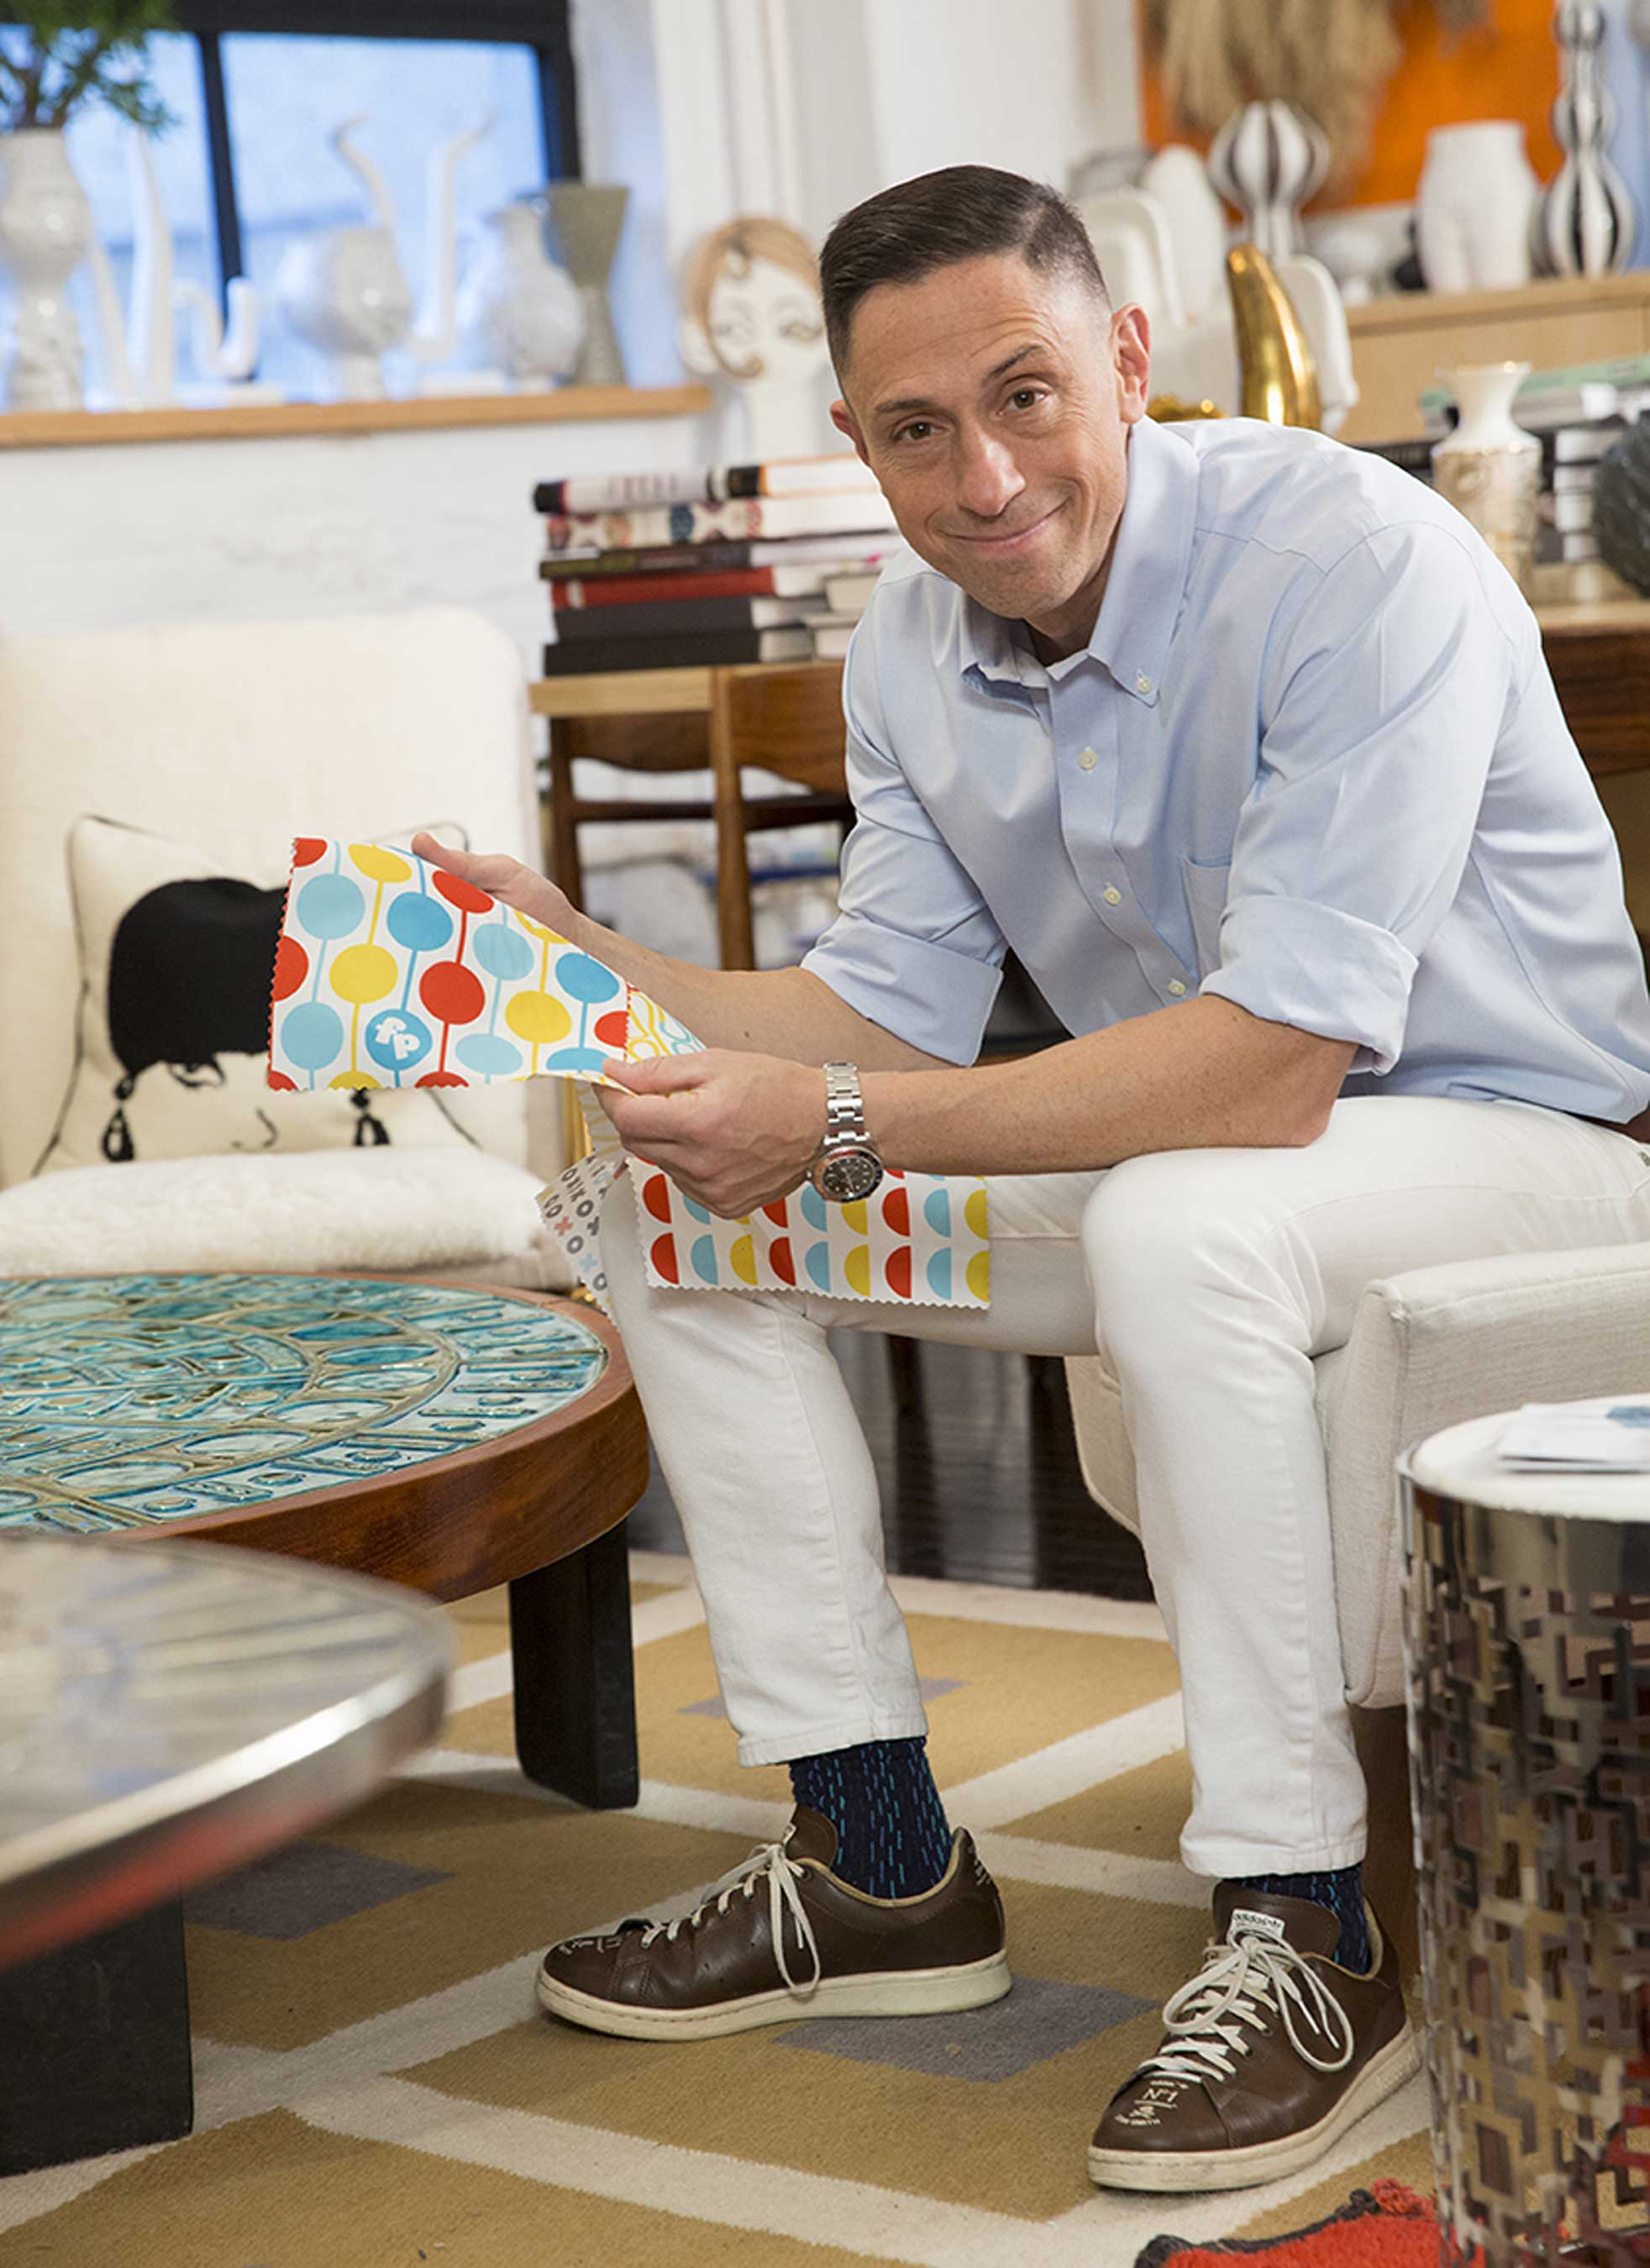 Fisher-Price has appointed renowned potter, designer and author Jonathan Adler as Creative Director, blending his modern design with the brand's expertise in early childhood development